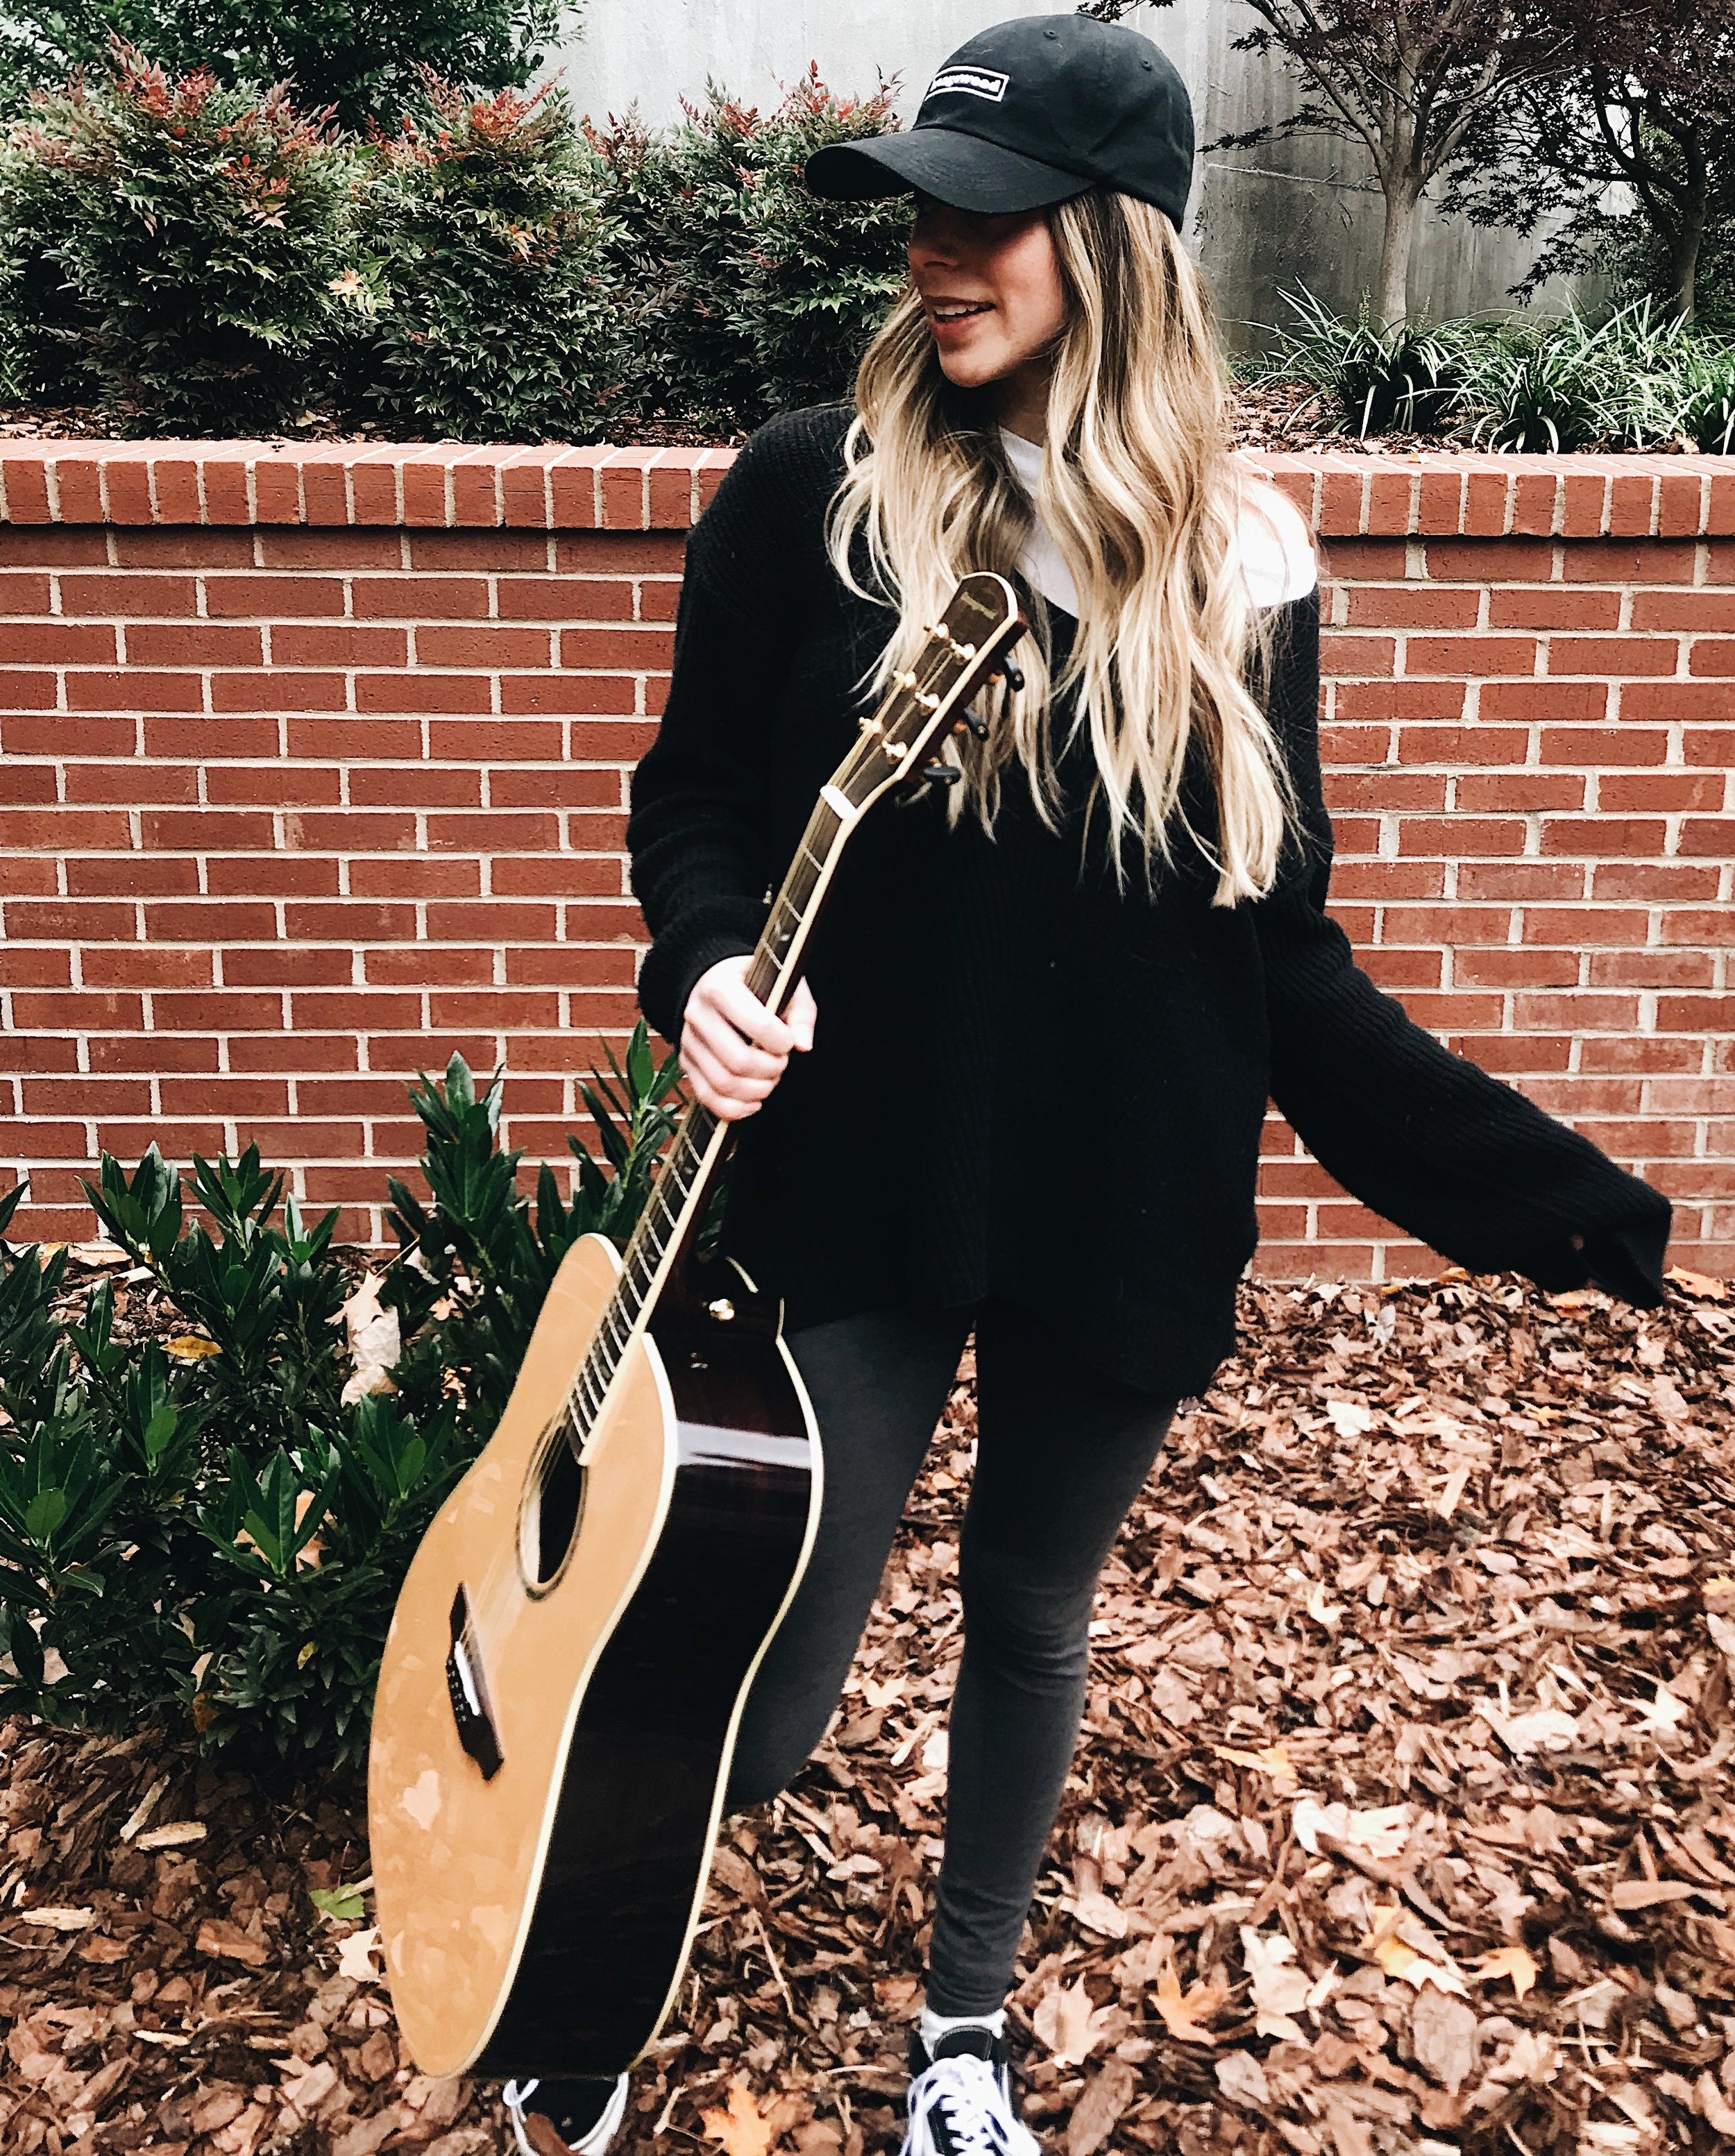 Also thankful for this amazing  Orangewood guitar  and dad hat! Also if you use the Code:  haleysfriends10  you can get 10% off an awesome guitar!